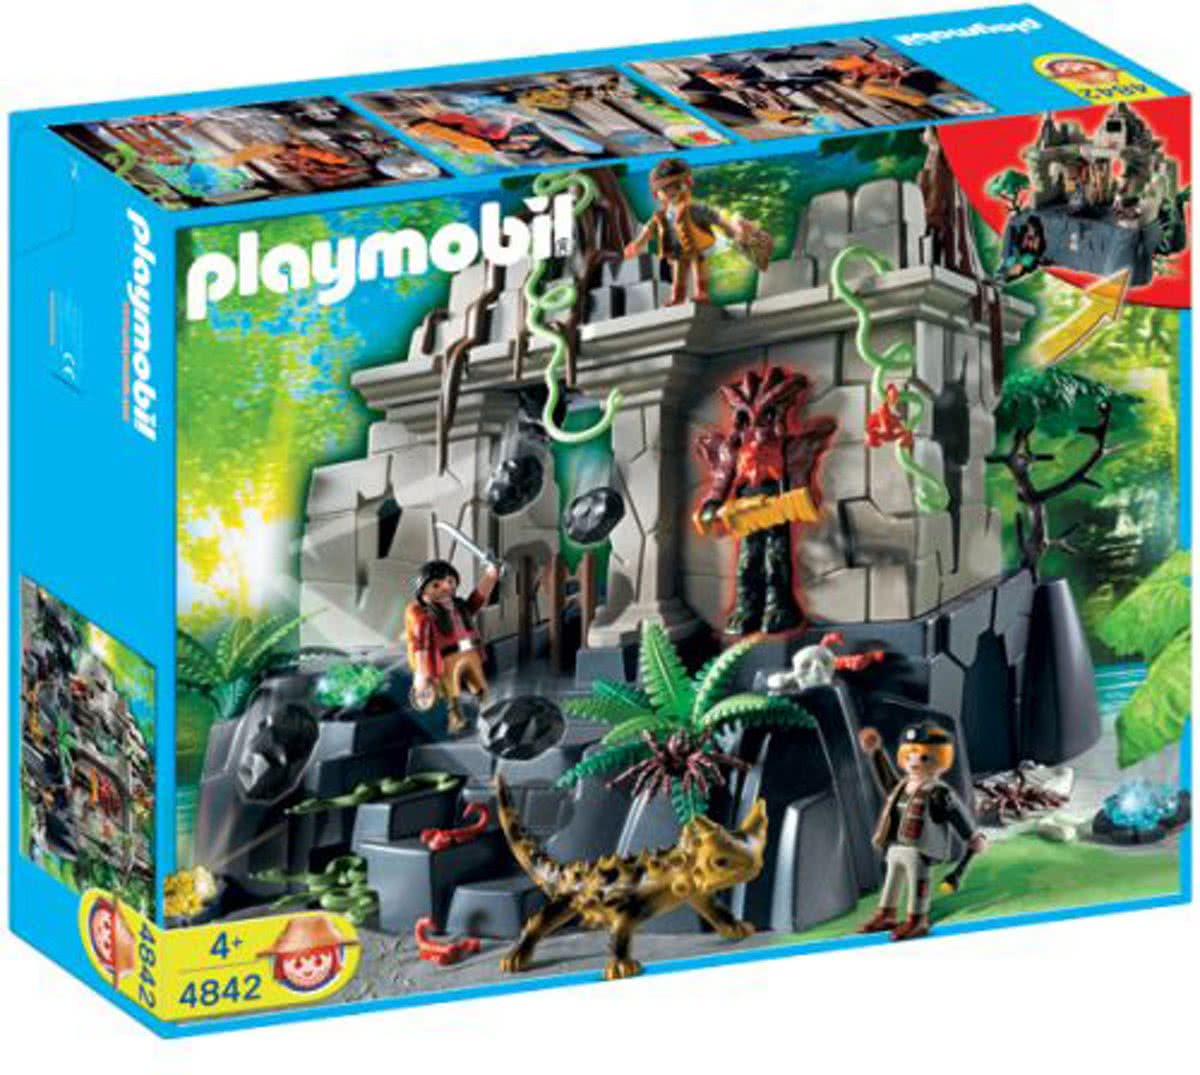 Playmobil Schattentempel - 4842